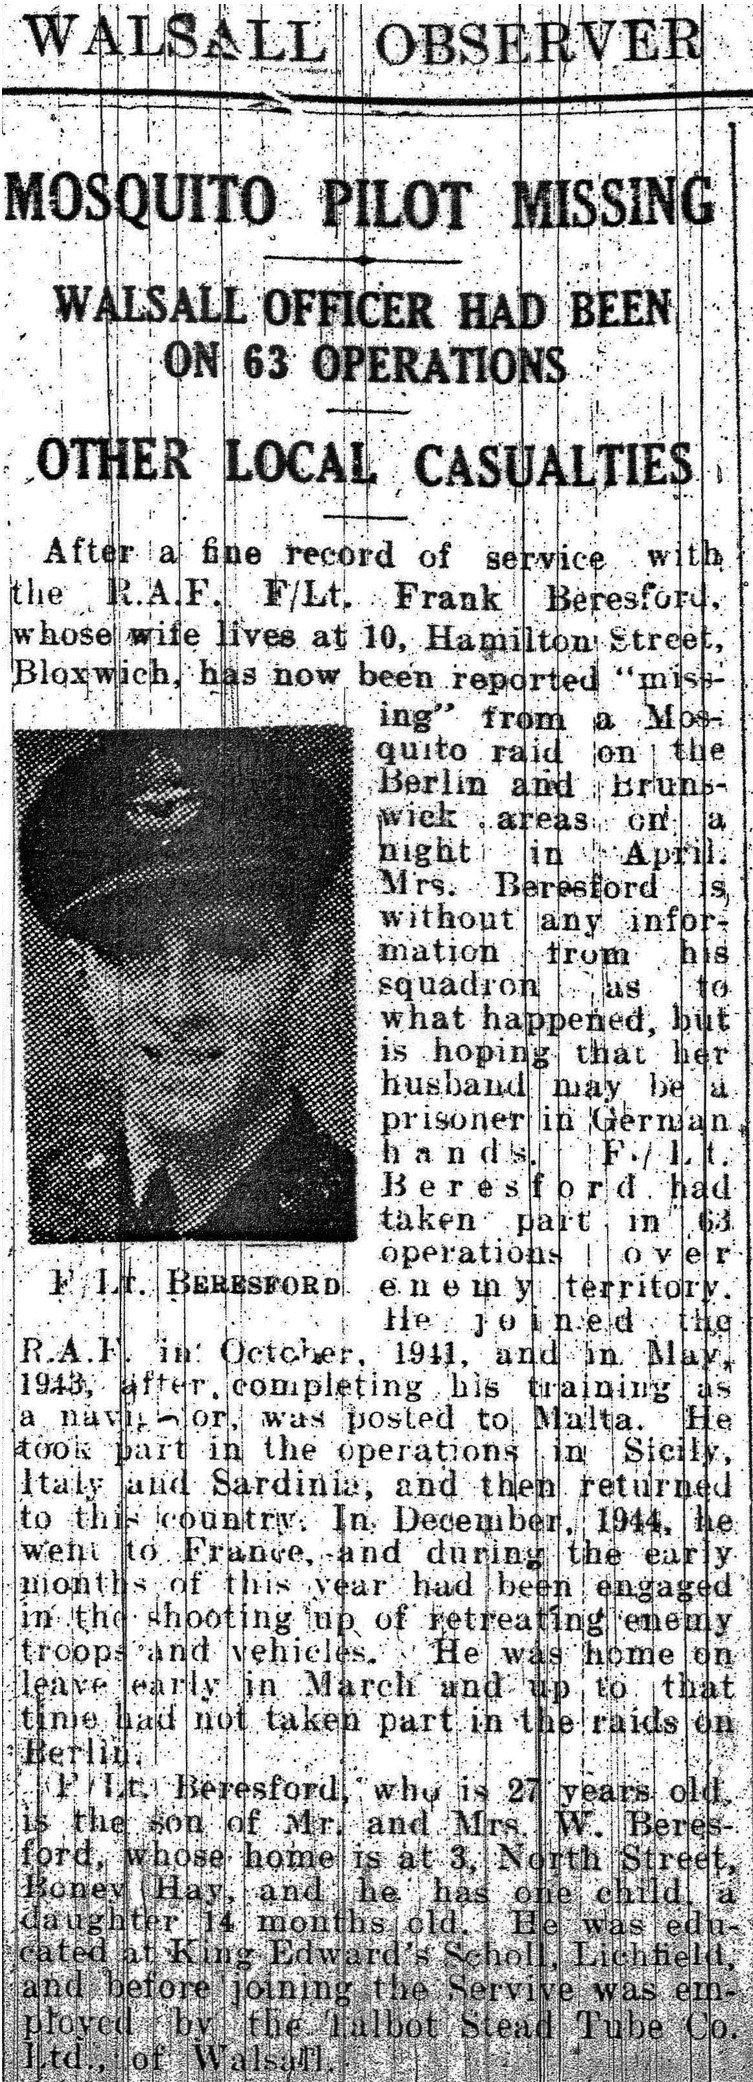 Extract from the Walsall Observer edition dated 5 May 1945